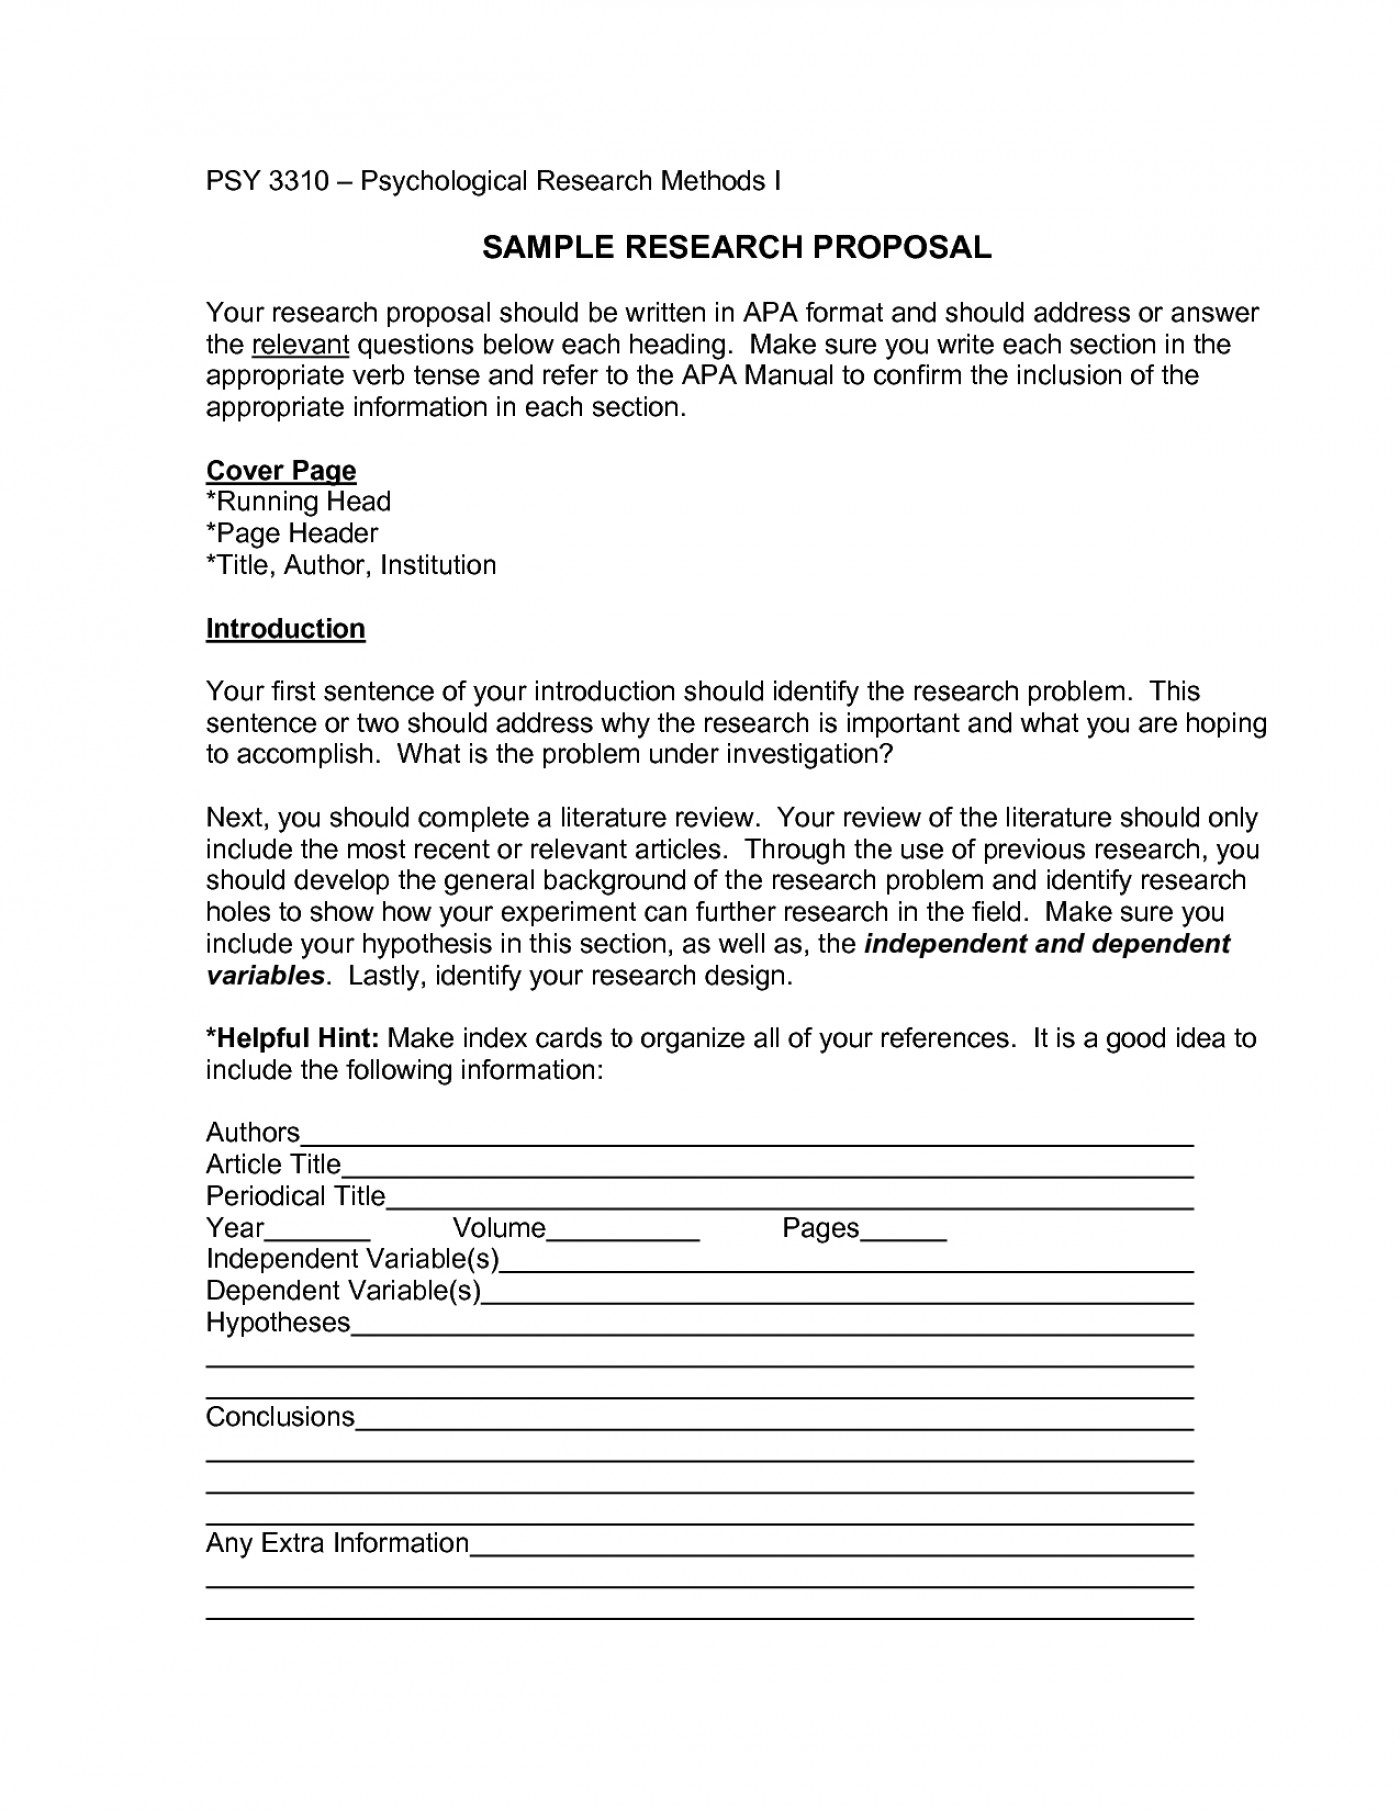 006 Apa Research Proposal Template Best Style Format With Sample Essay Writing Psychology Paper Of Beautiful Animal Testing Thesis 1400